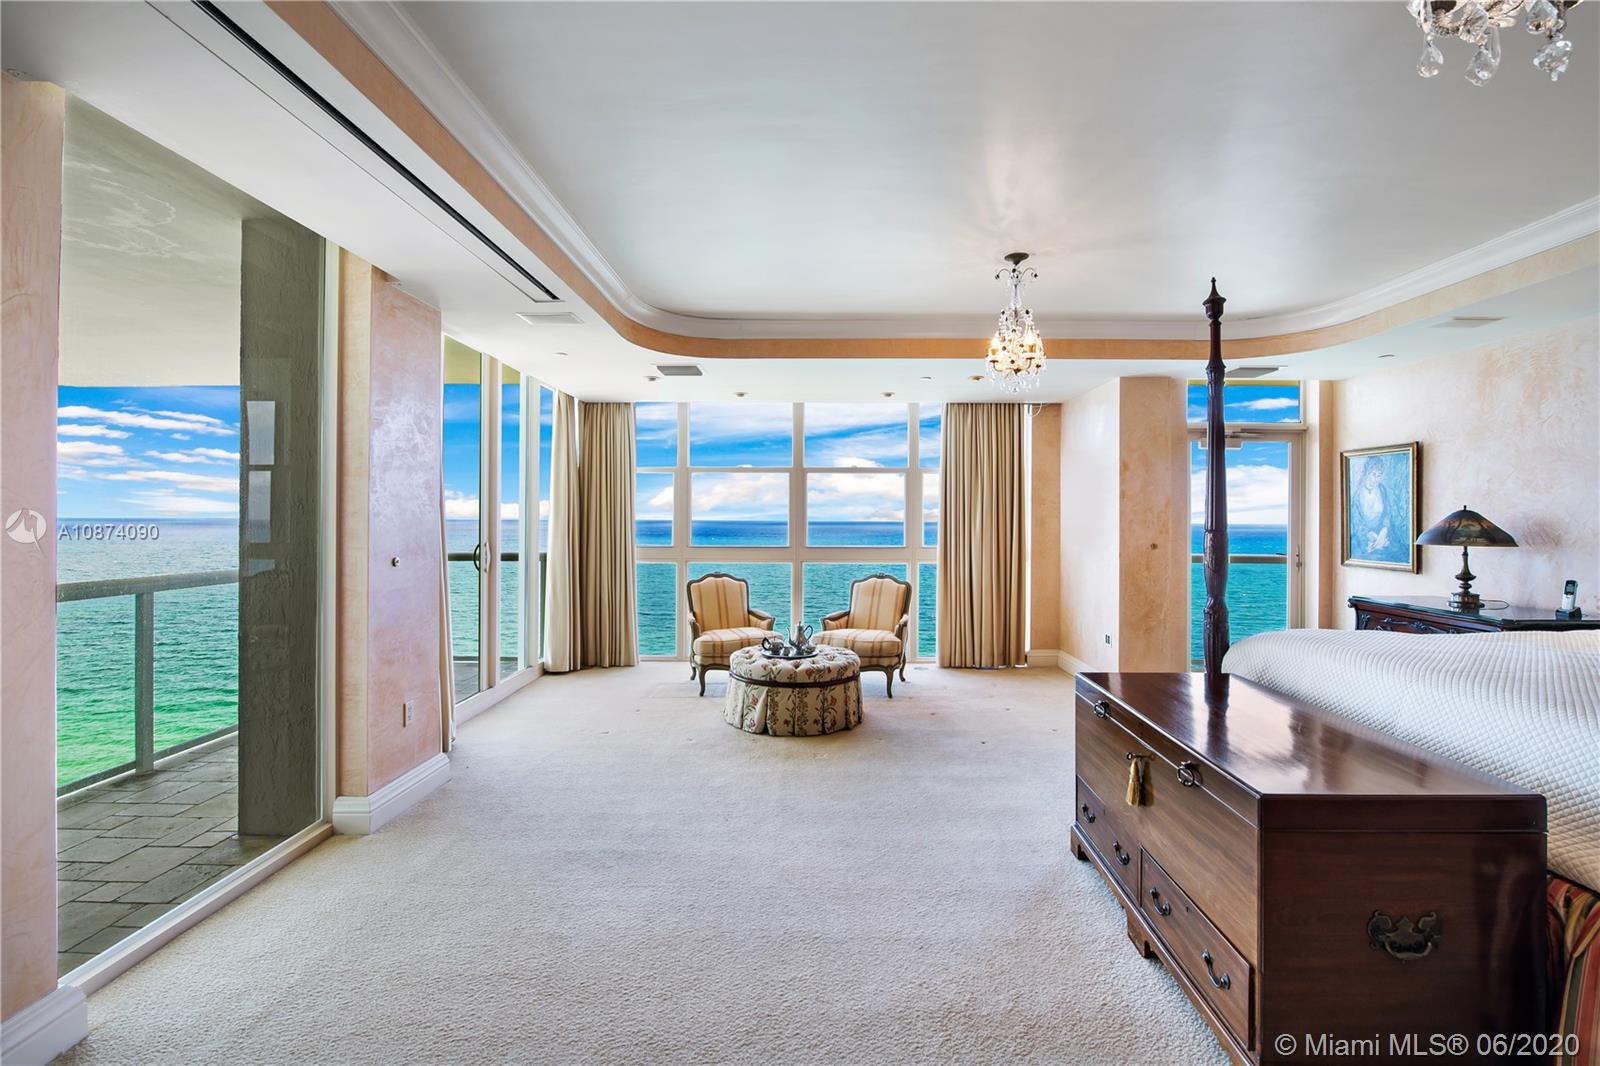 Photo of 6051 Ocean Dr #PH5, Hollywood, Florida, 33019 - Master bedroom suite with private balconies and seating area